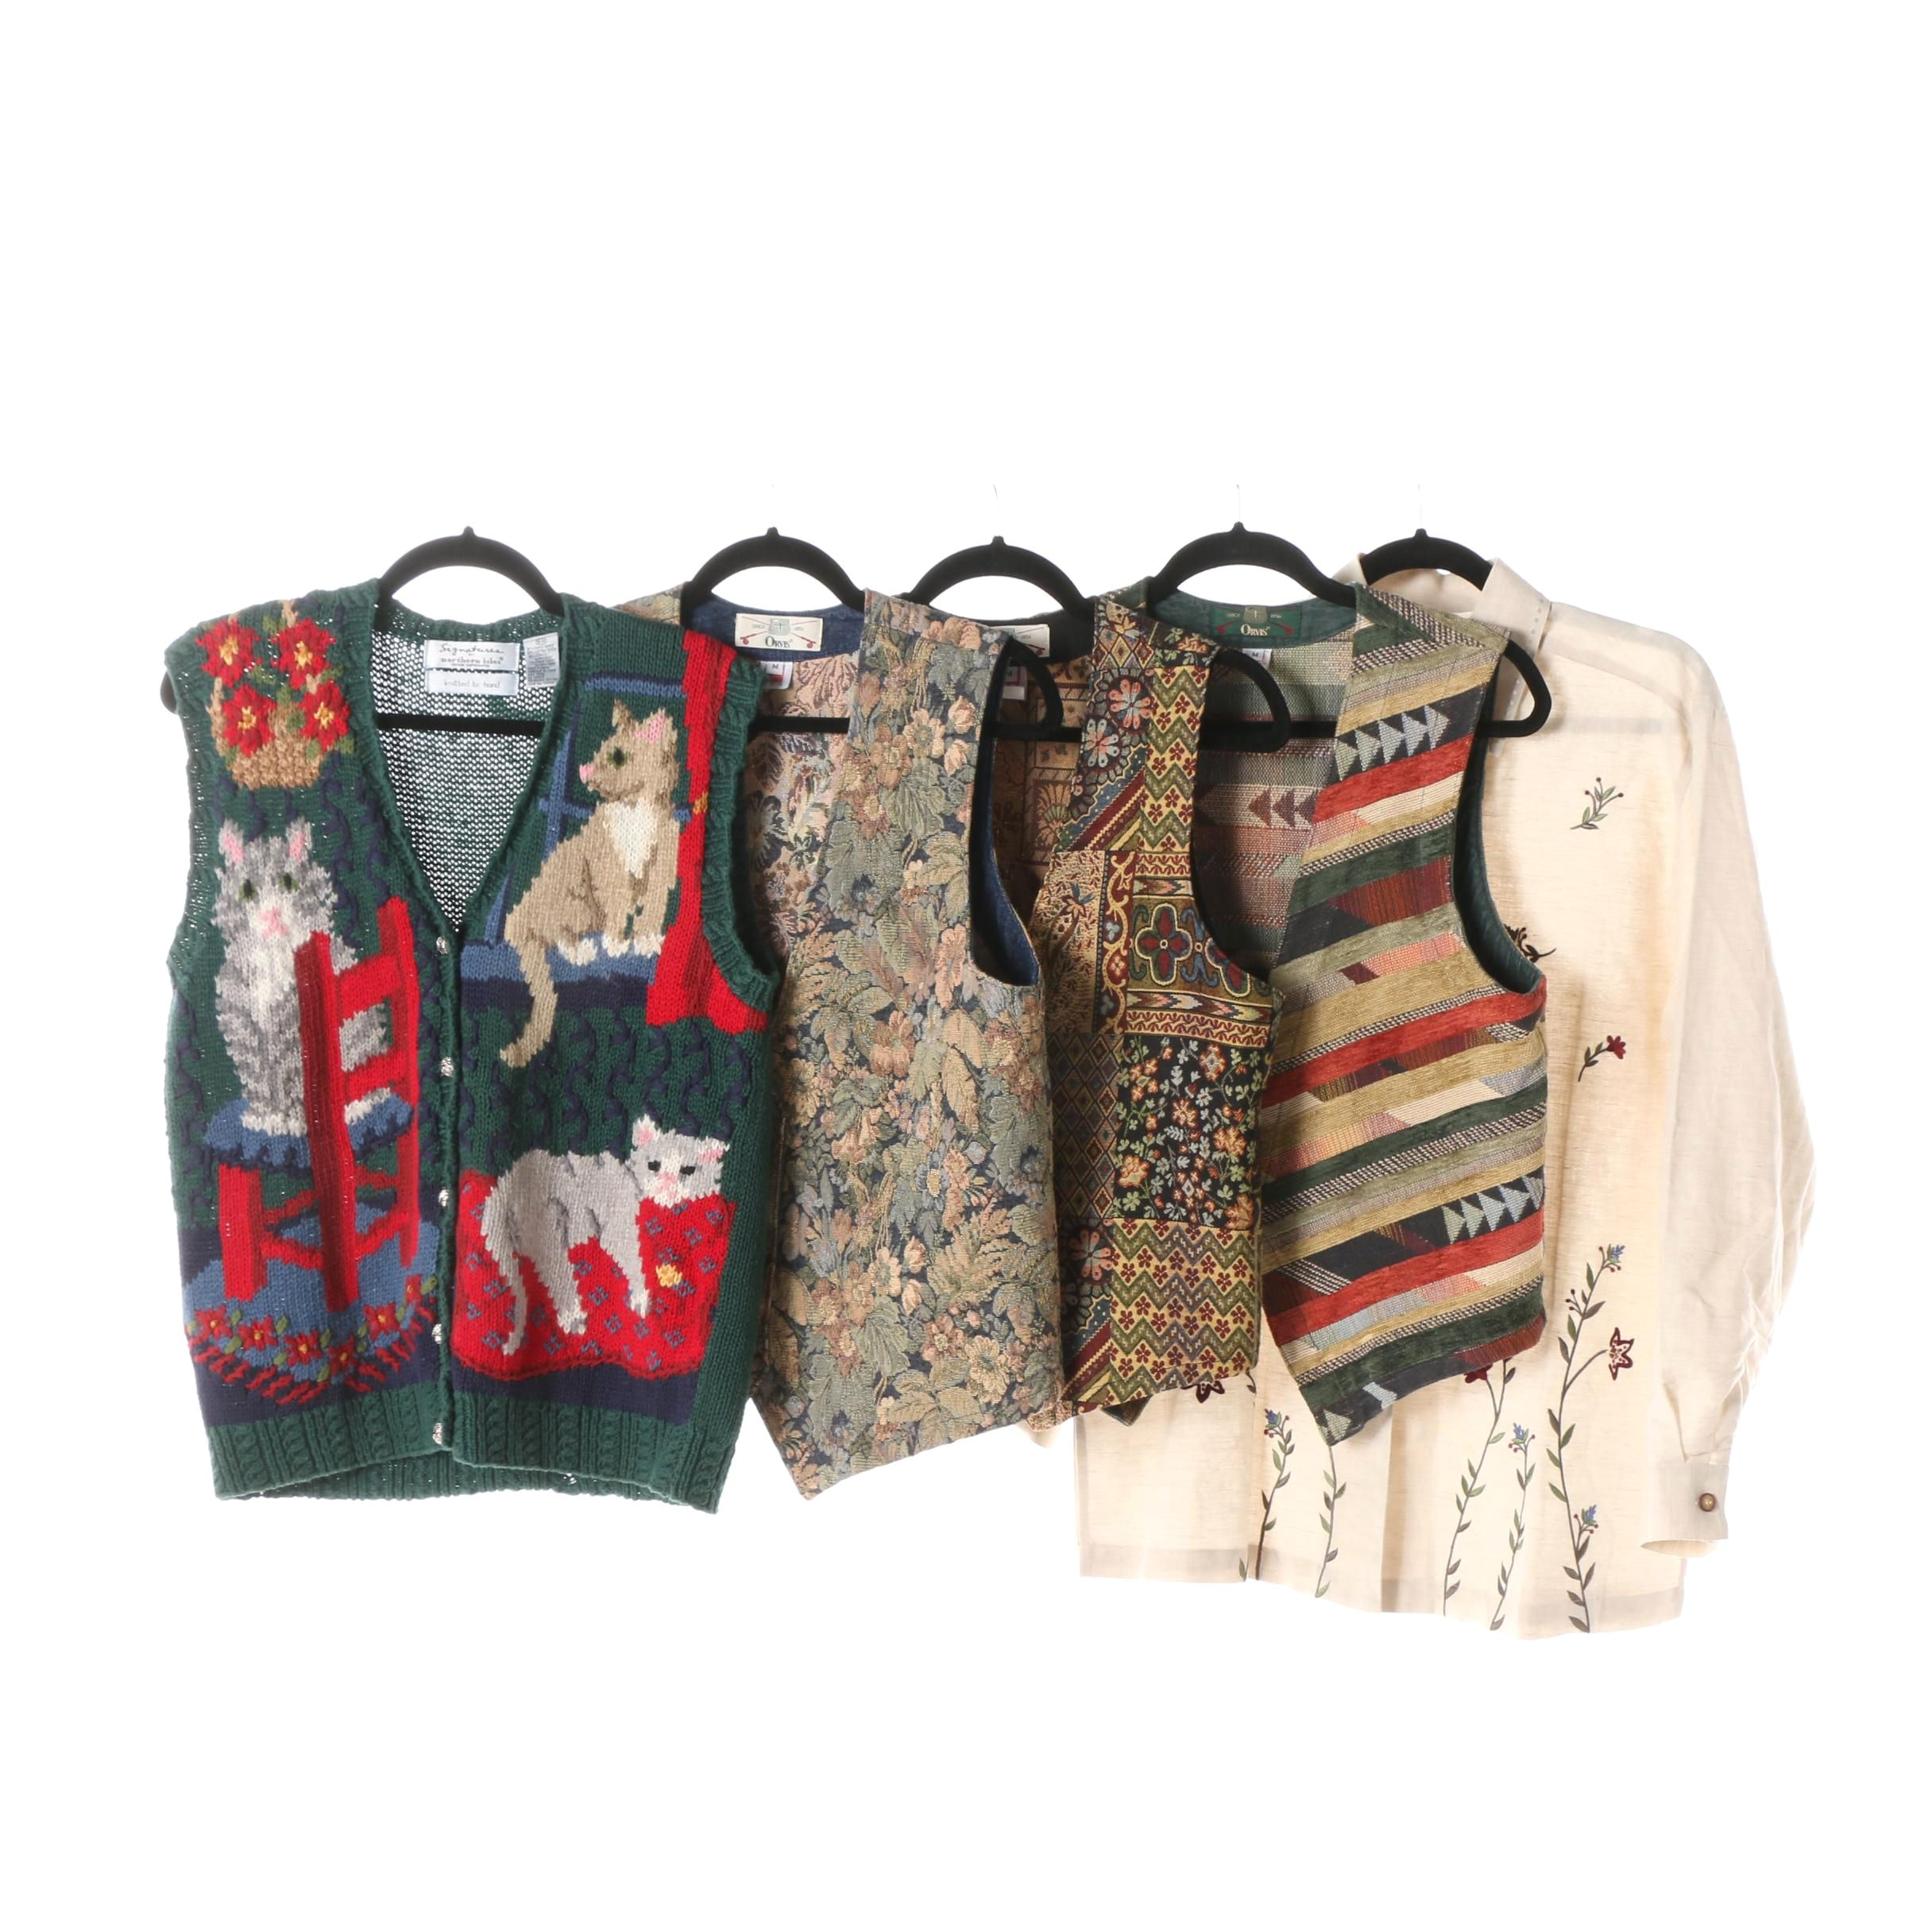 Women's Vests and Button-Front Shirt including Talbots and Orvis